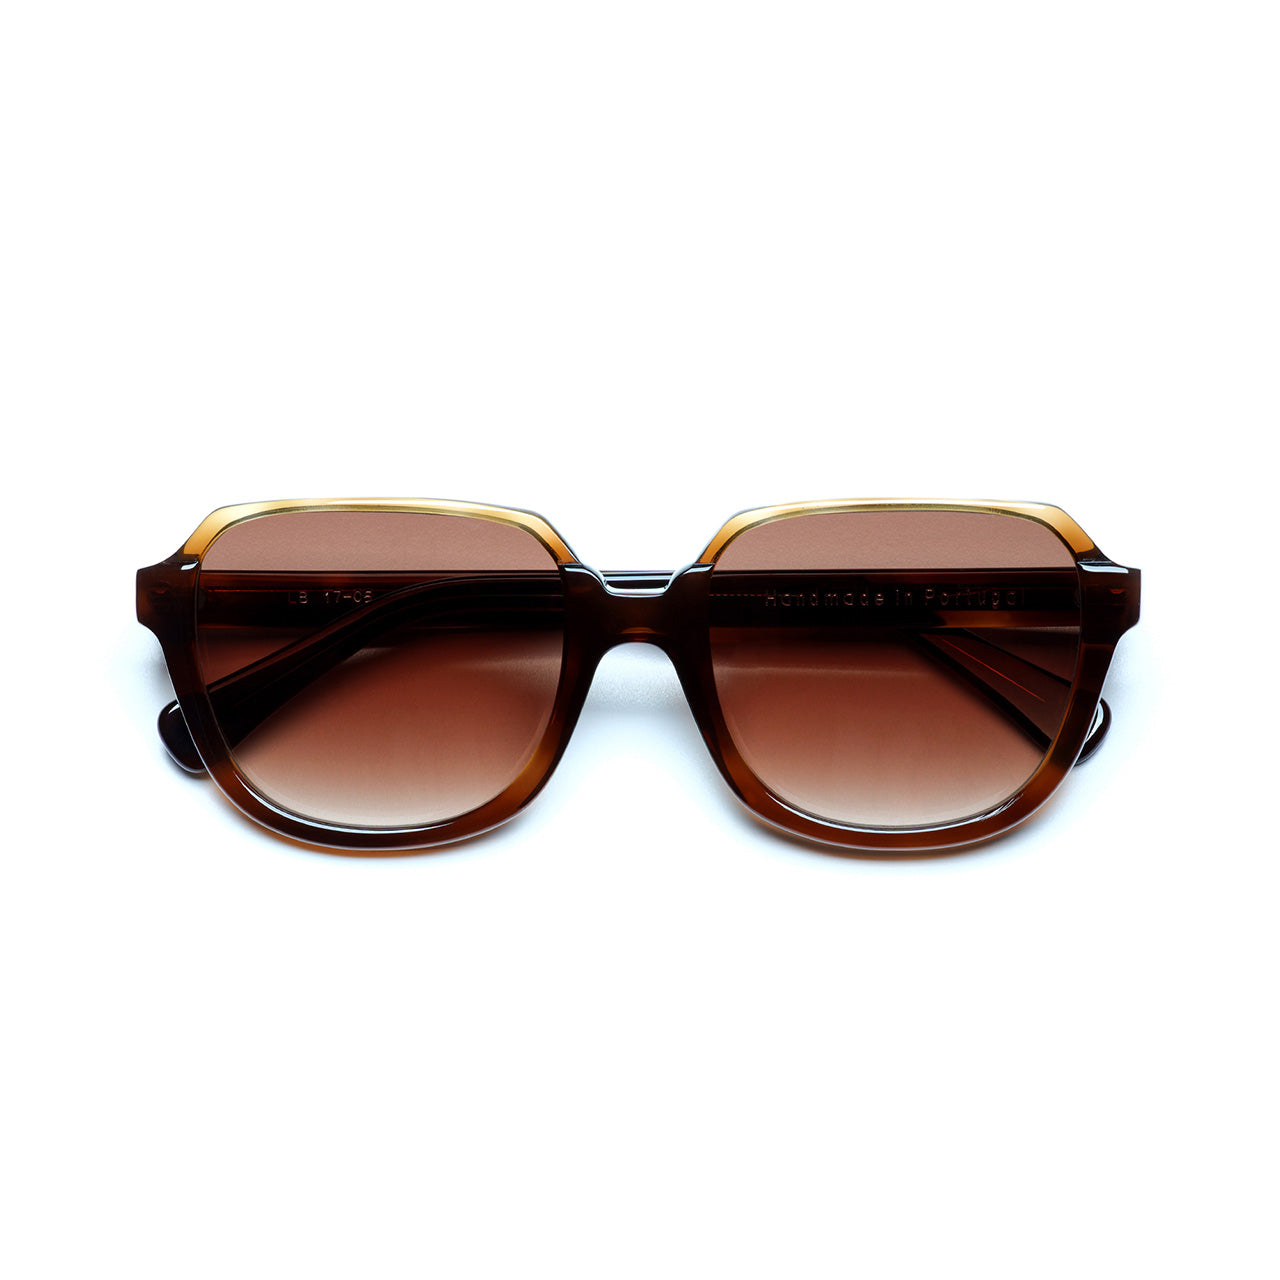 Sunglasses 17-05 C12